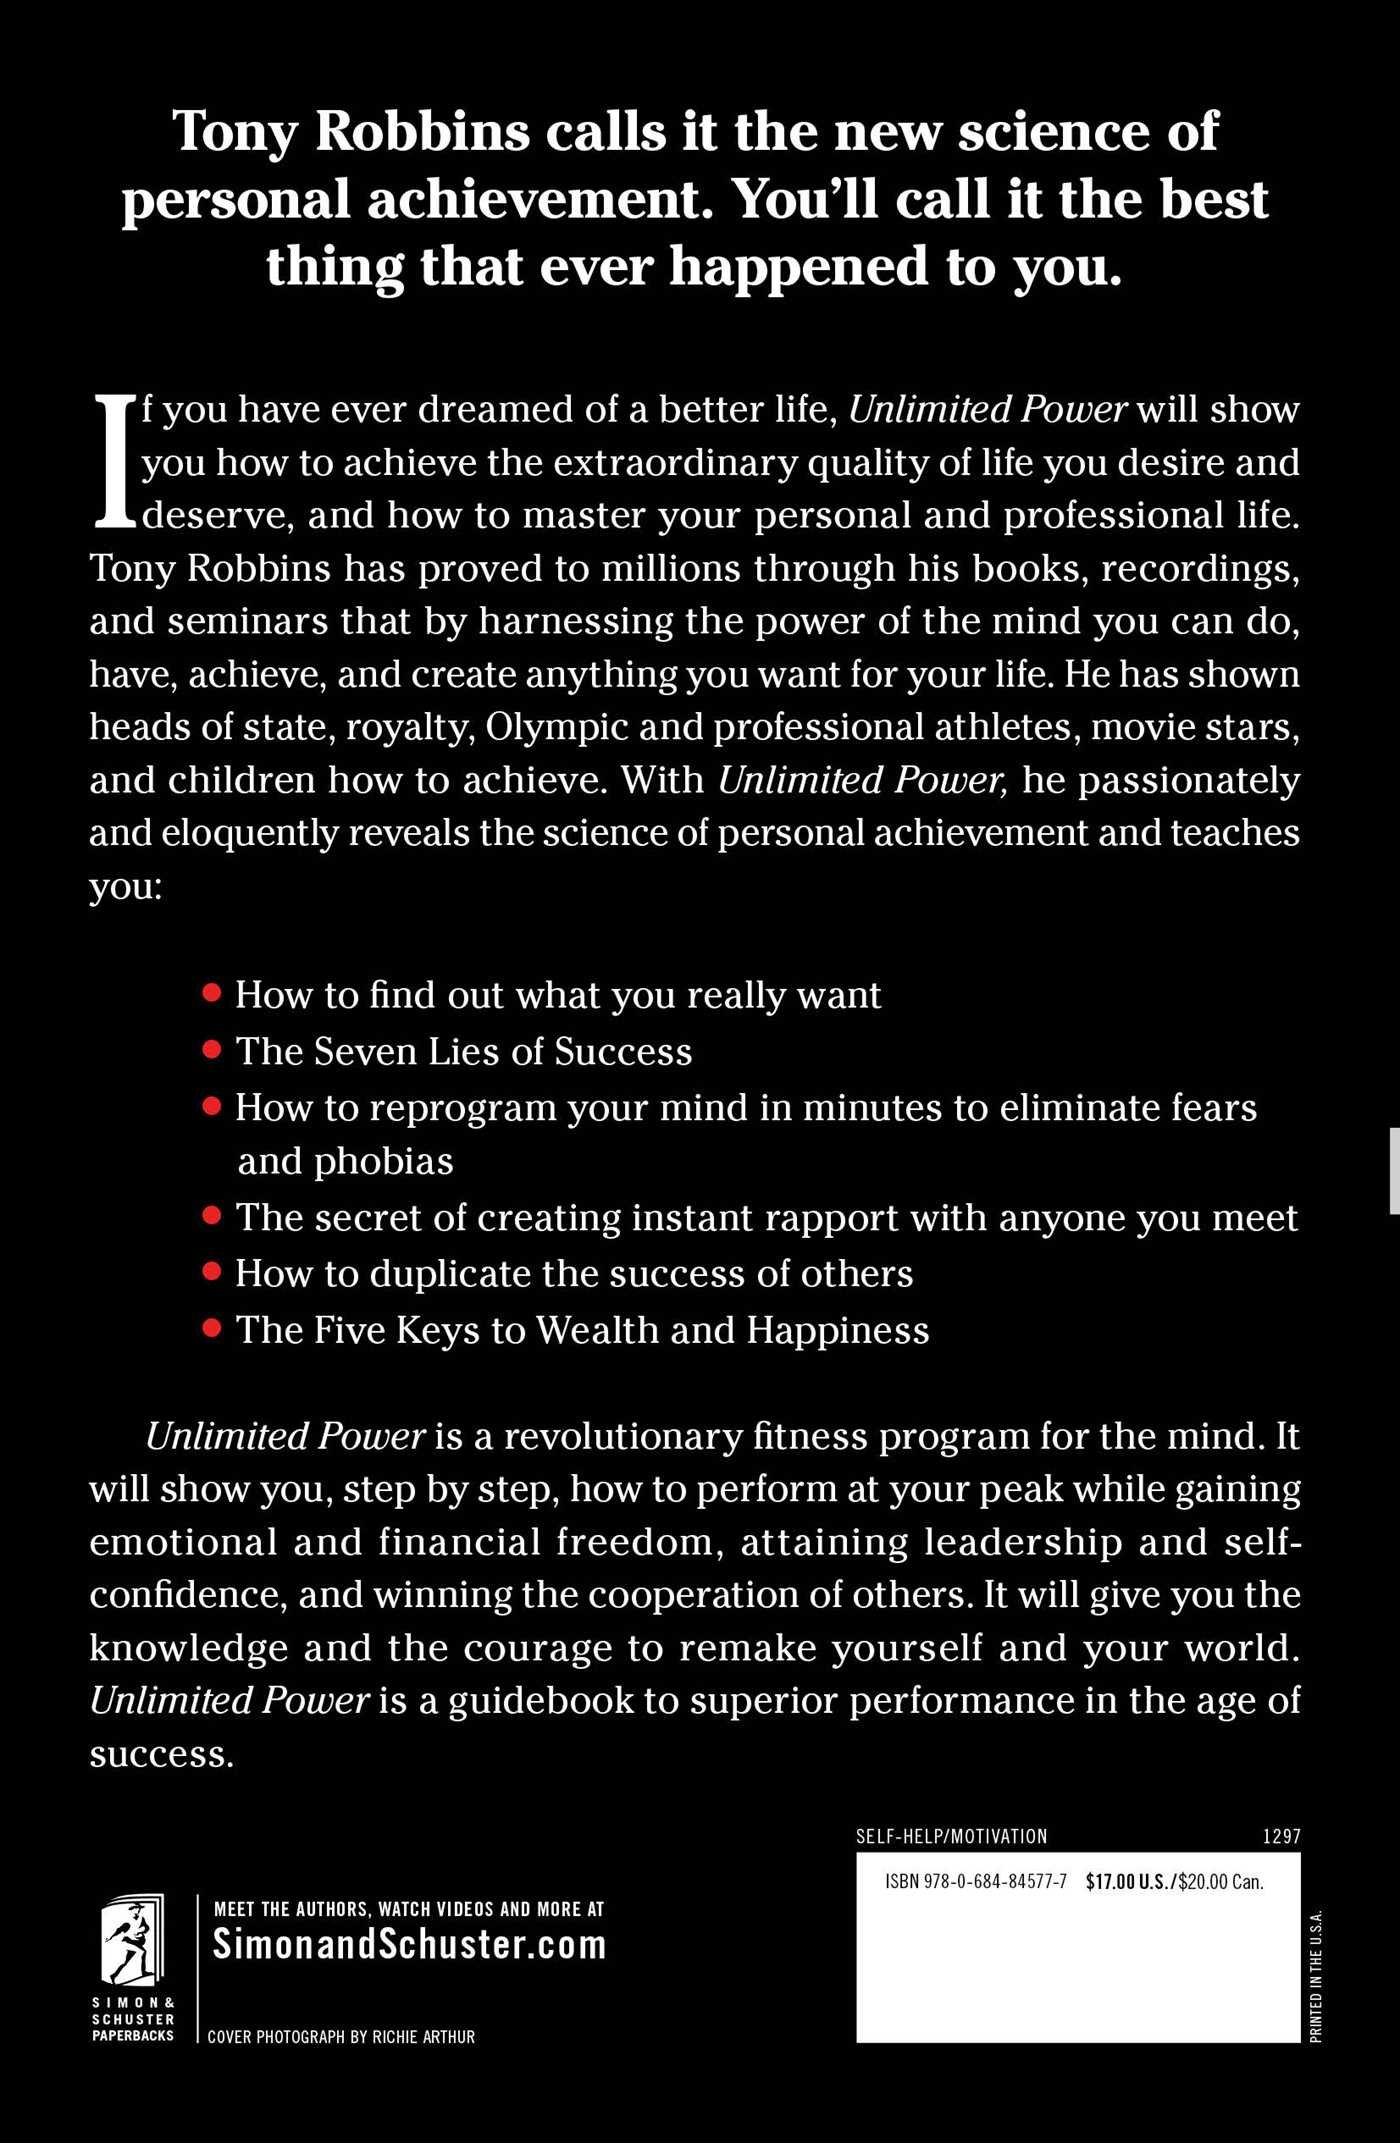 unlimited power the new science of personal achievement english edition